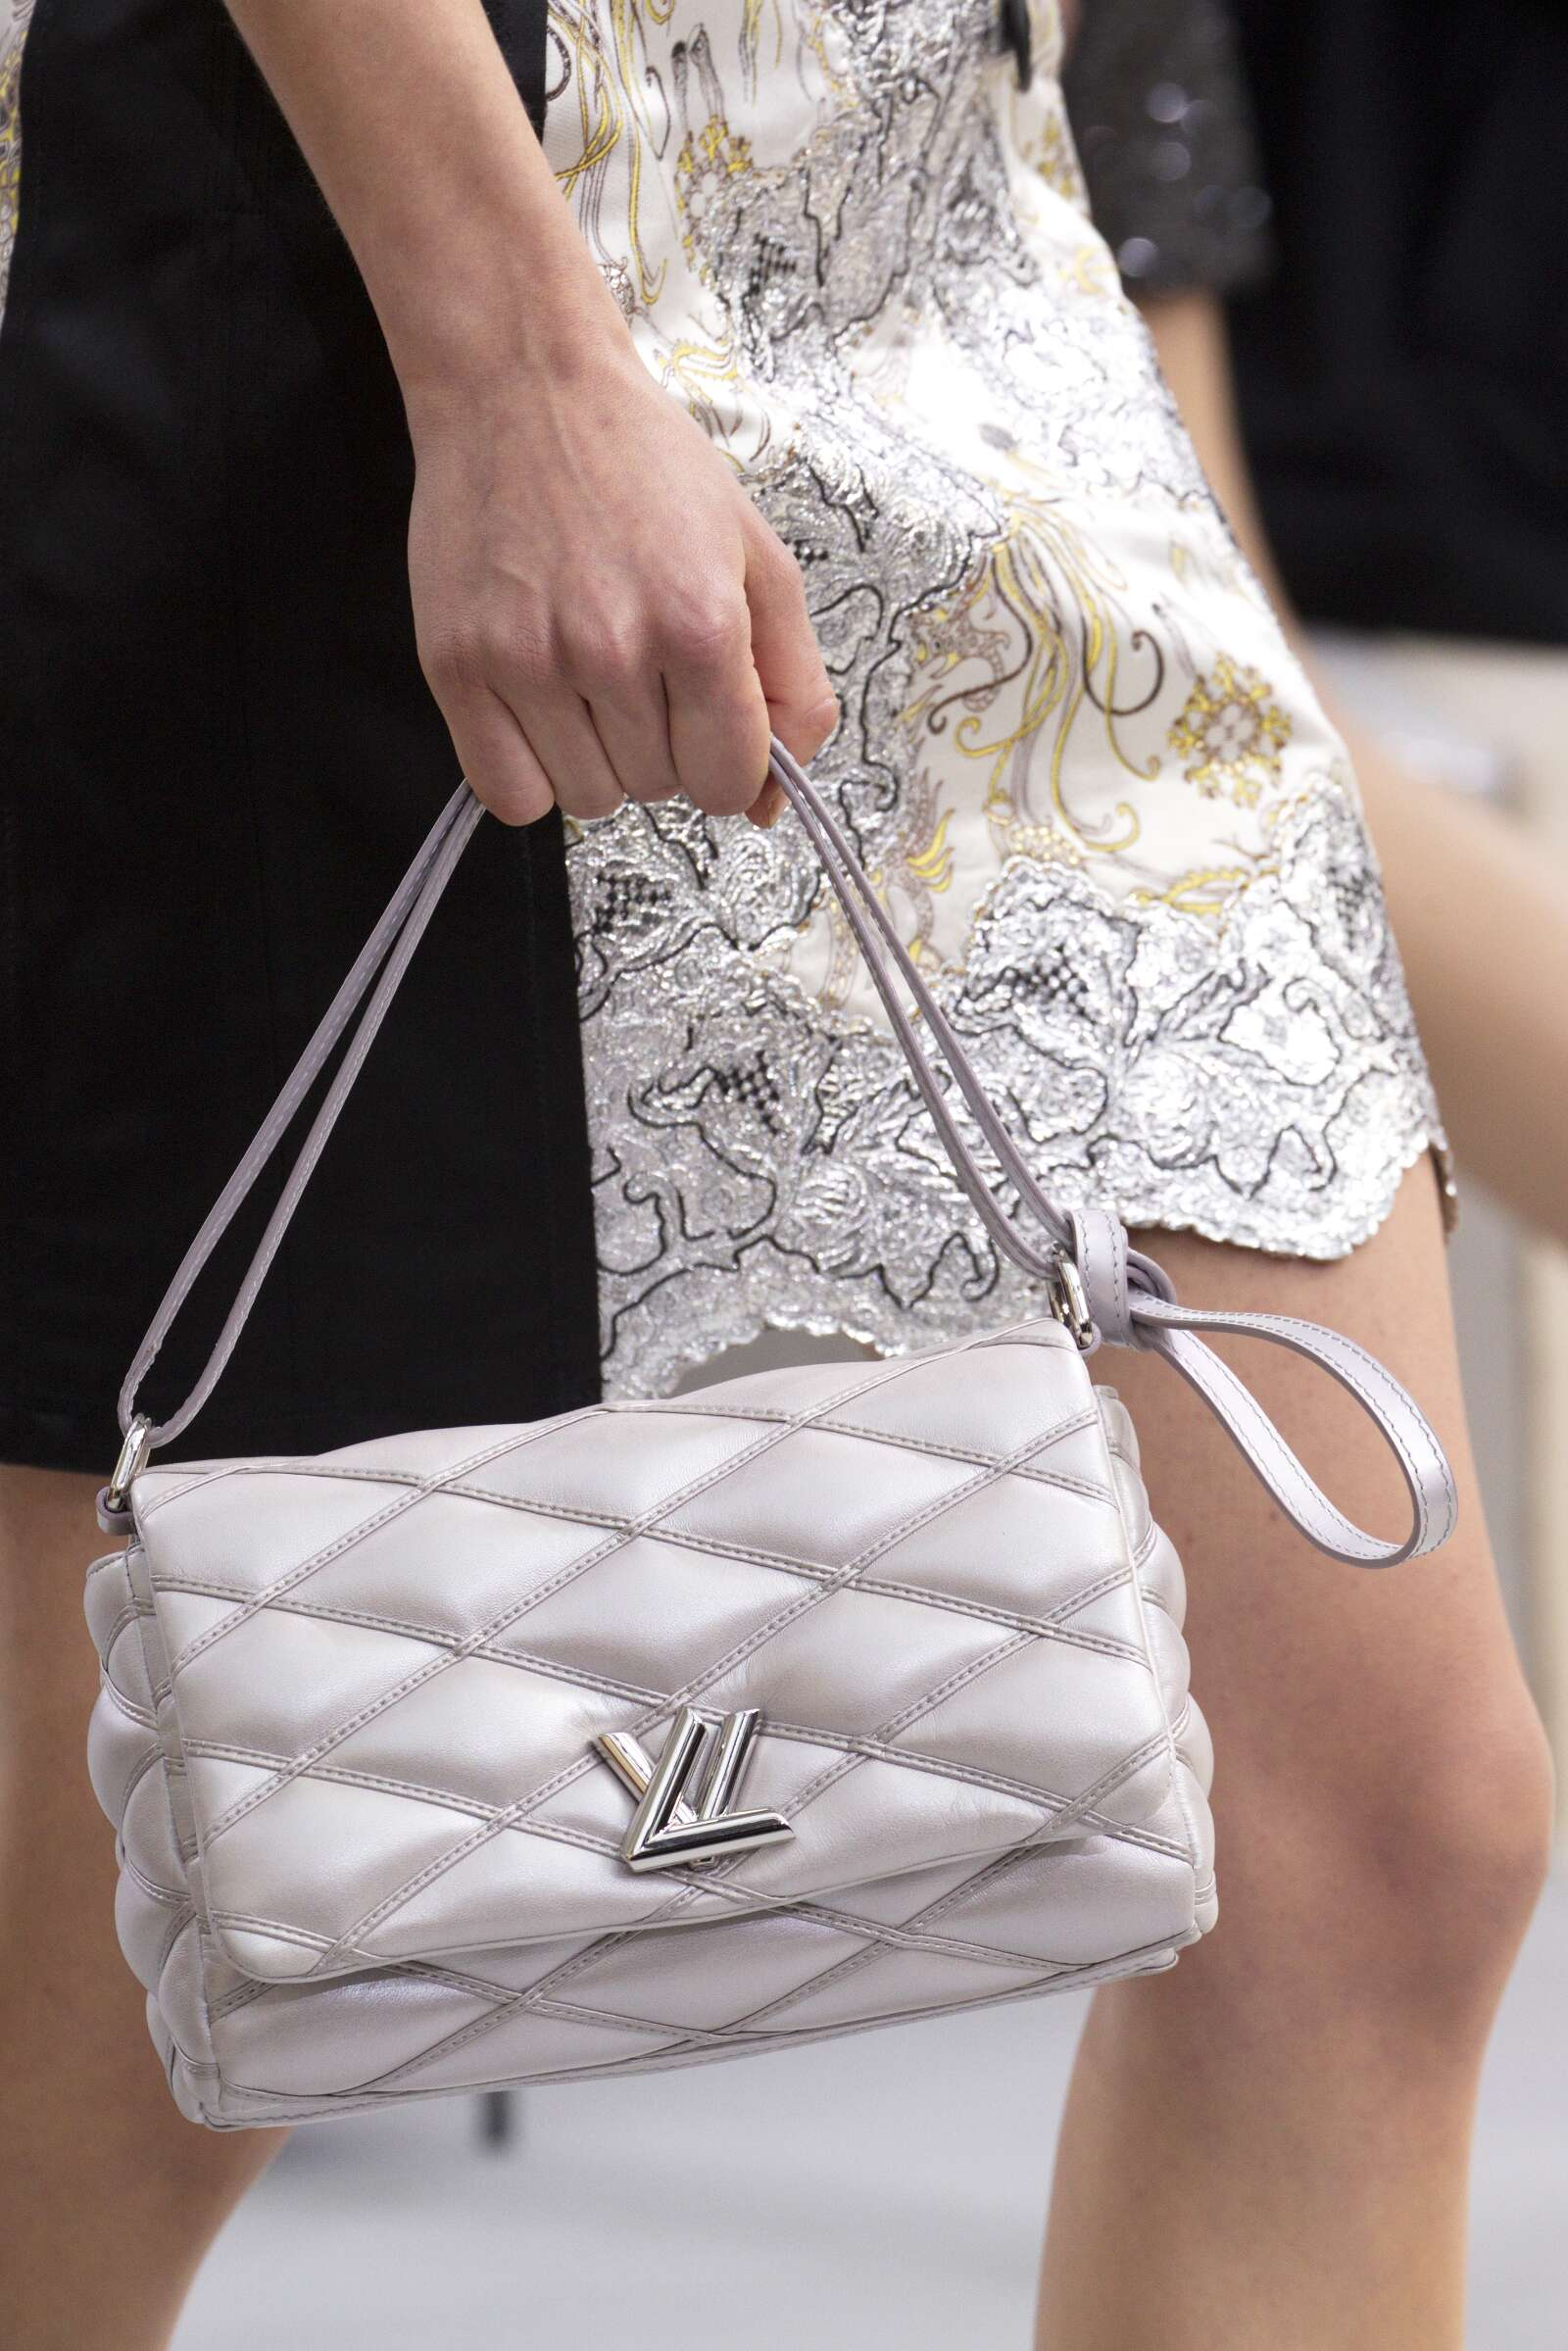 Louis Vuitton Bag Details Fall Winter 2015 16 Women's Collection Paris Fashion Week